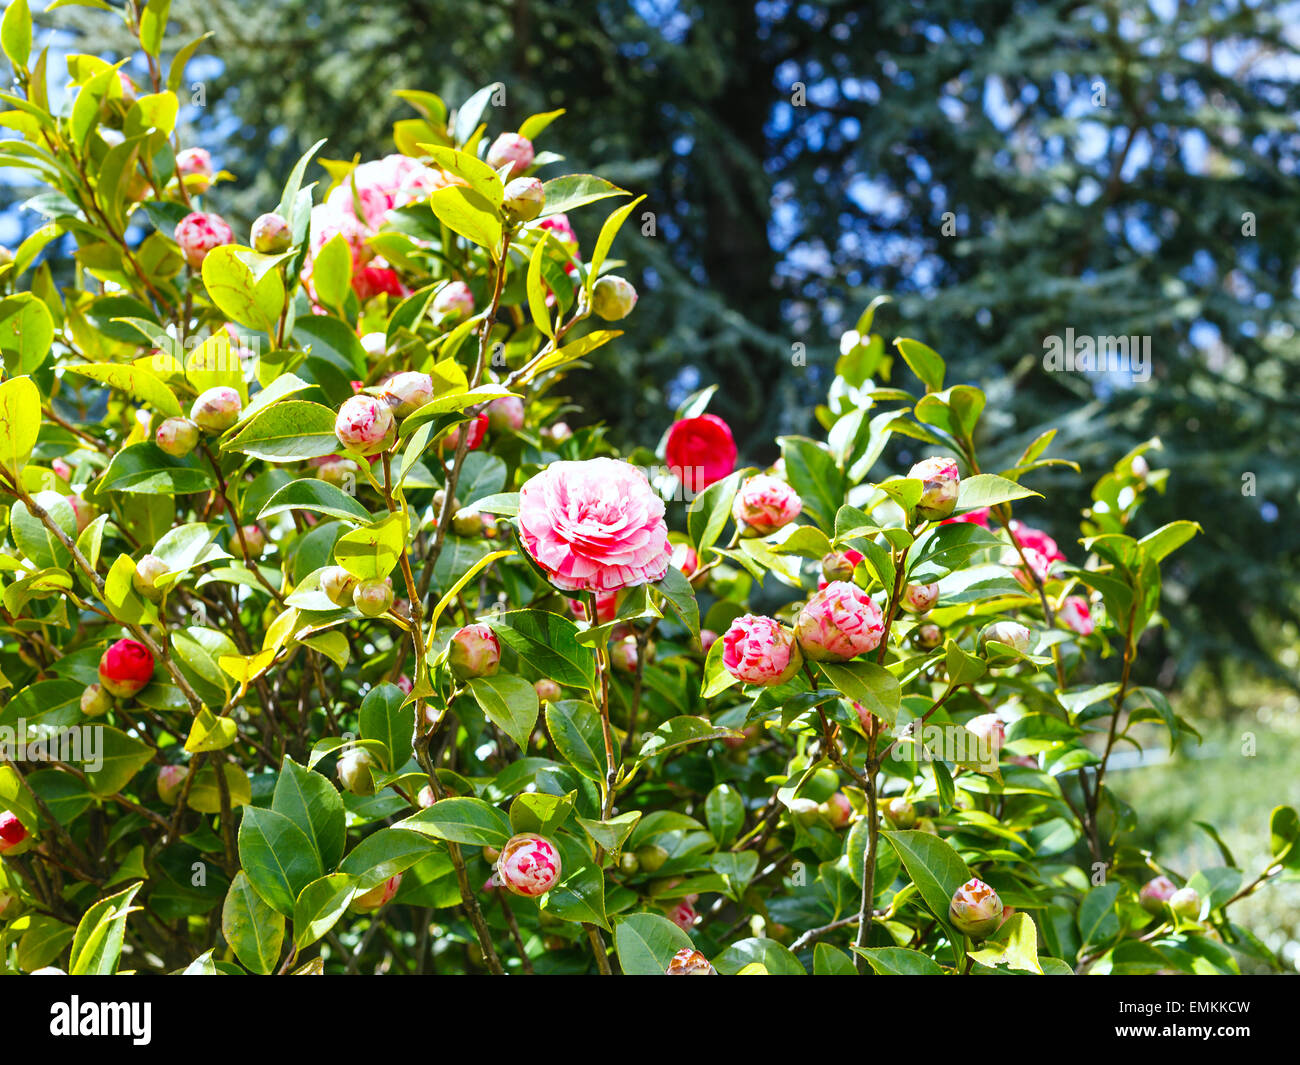 Pink and white flowers on camellia bush in spring sicily stock pink and white flowers on camellia bush in spring sicily mightylinksfo